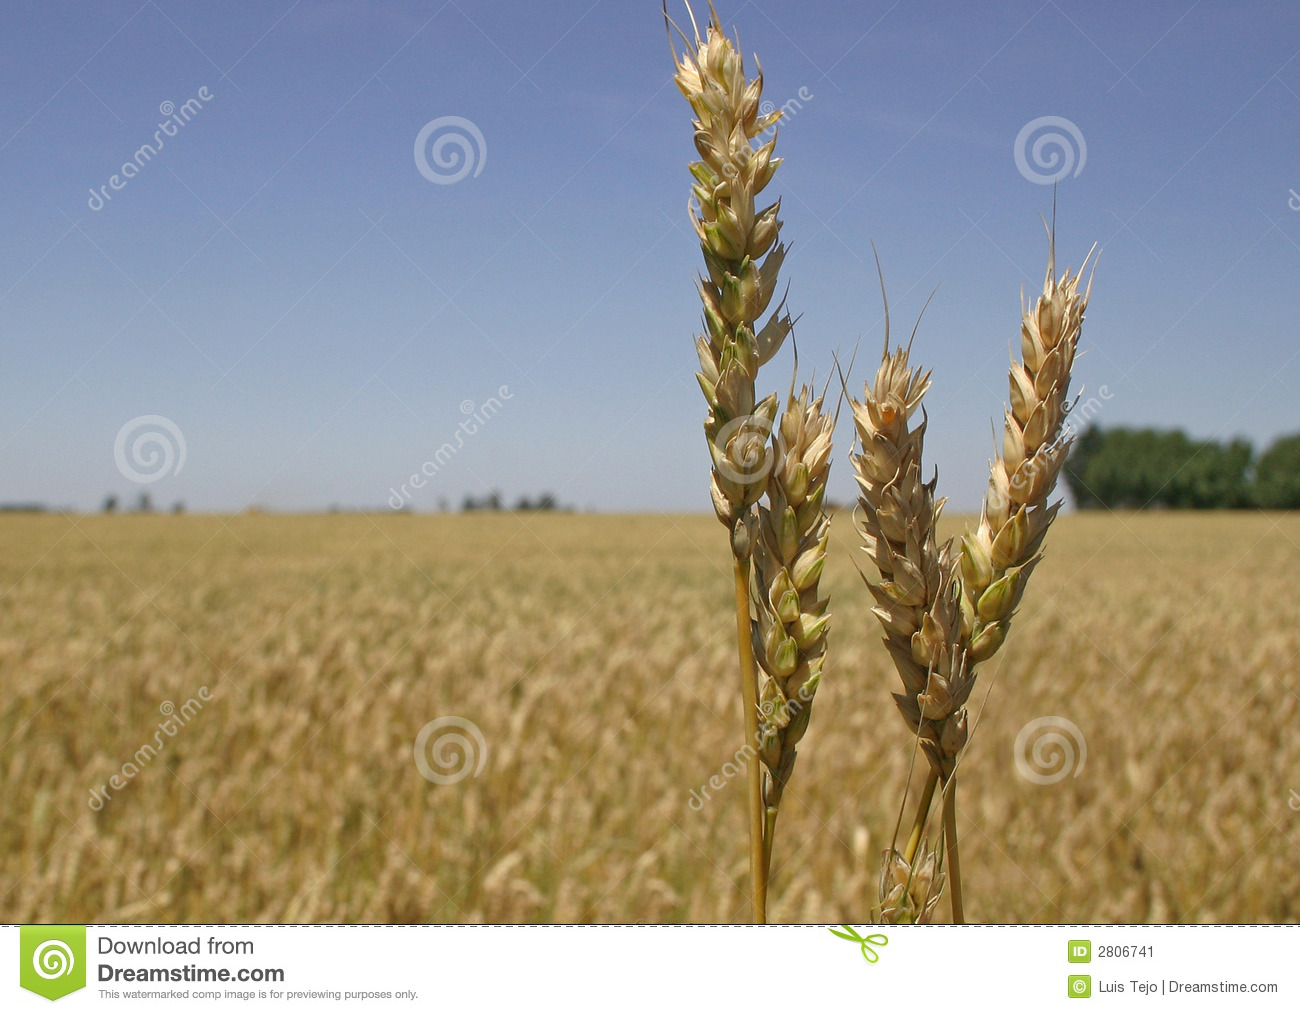 Wheat field and spikes